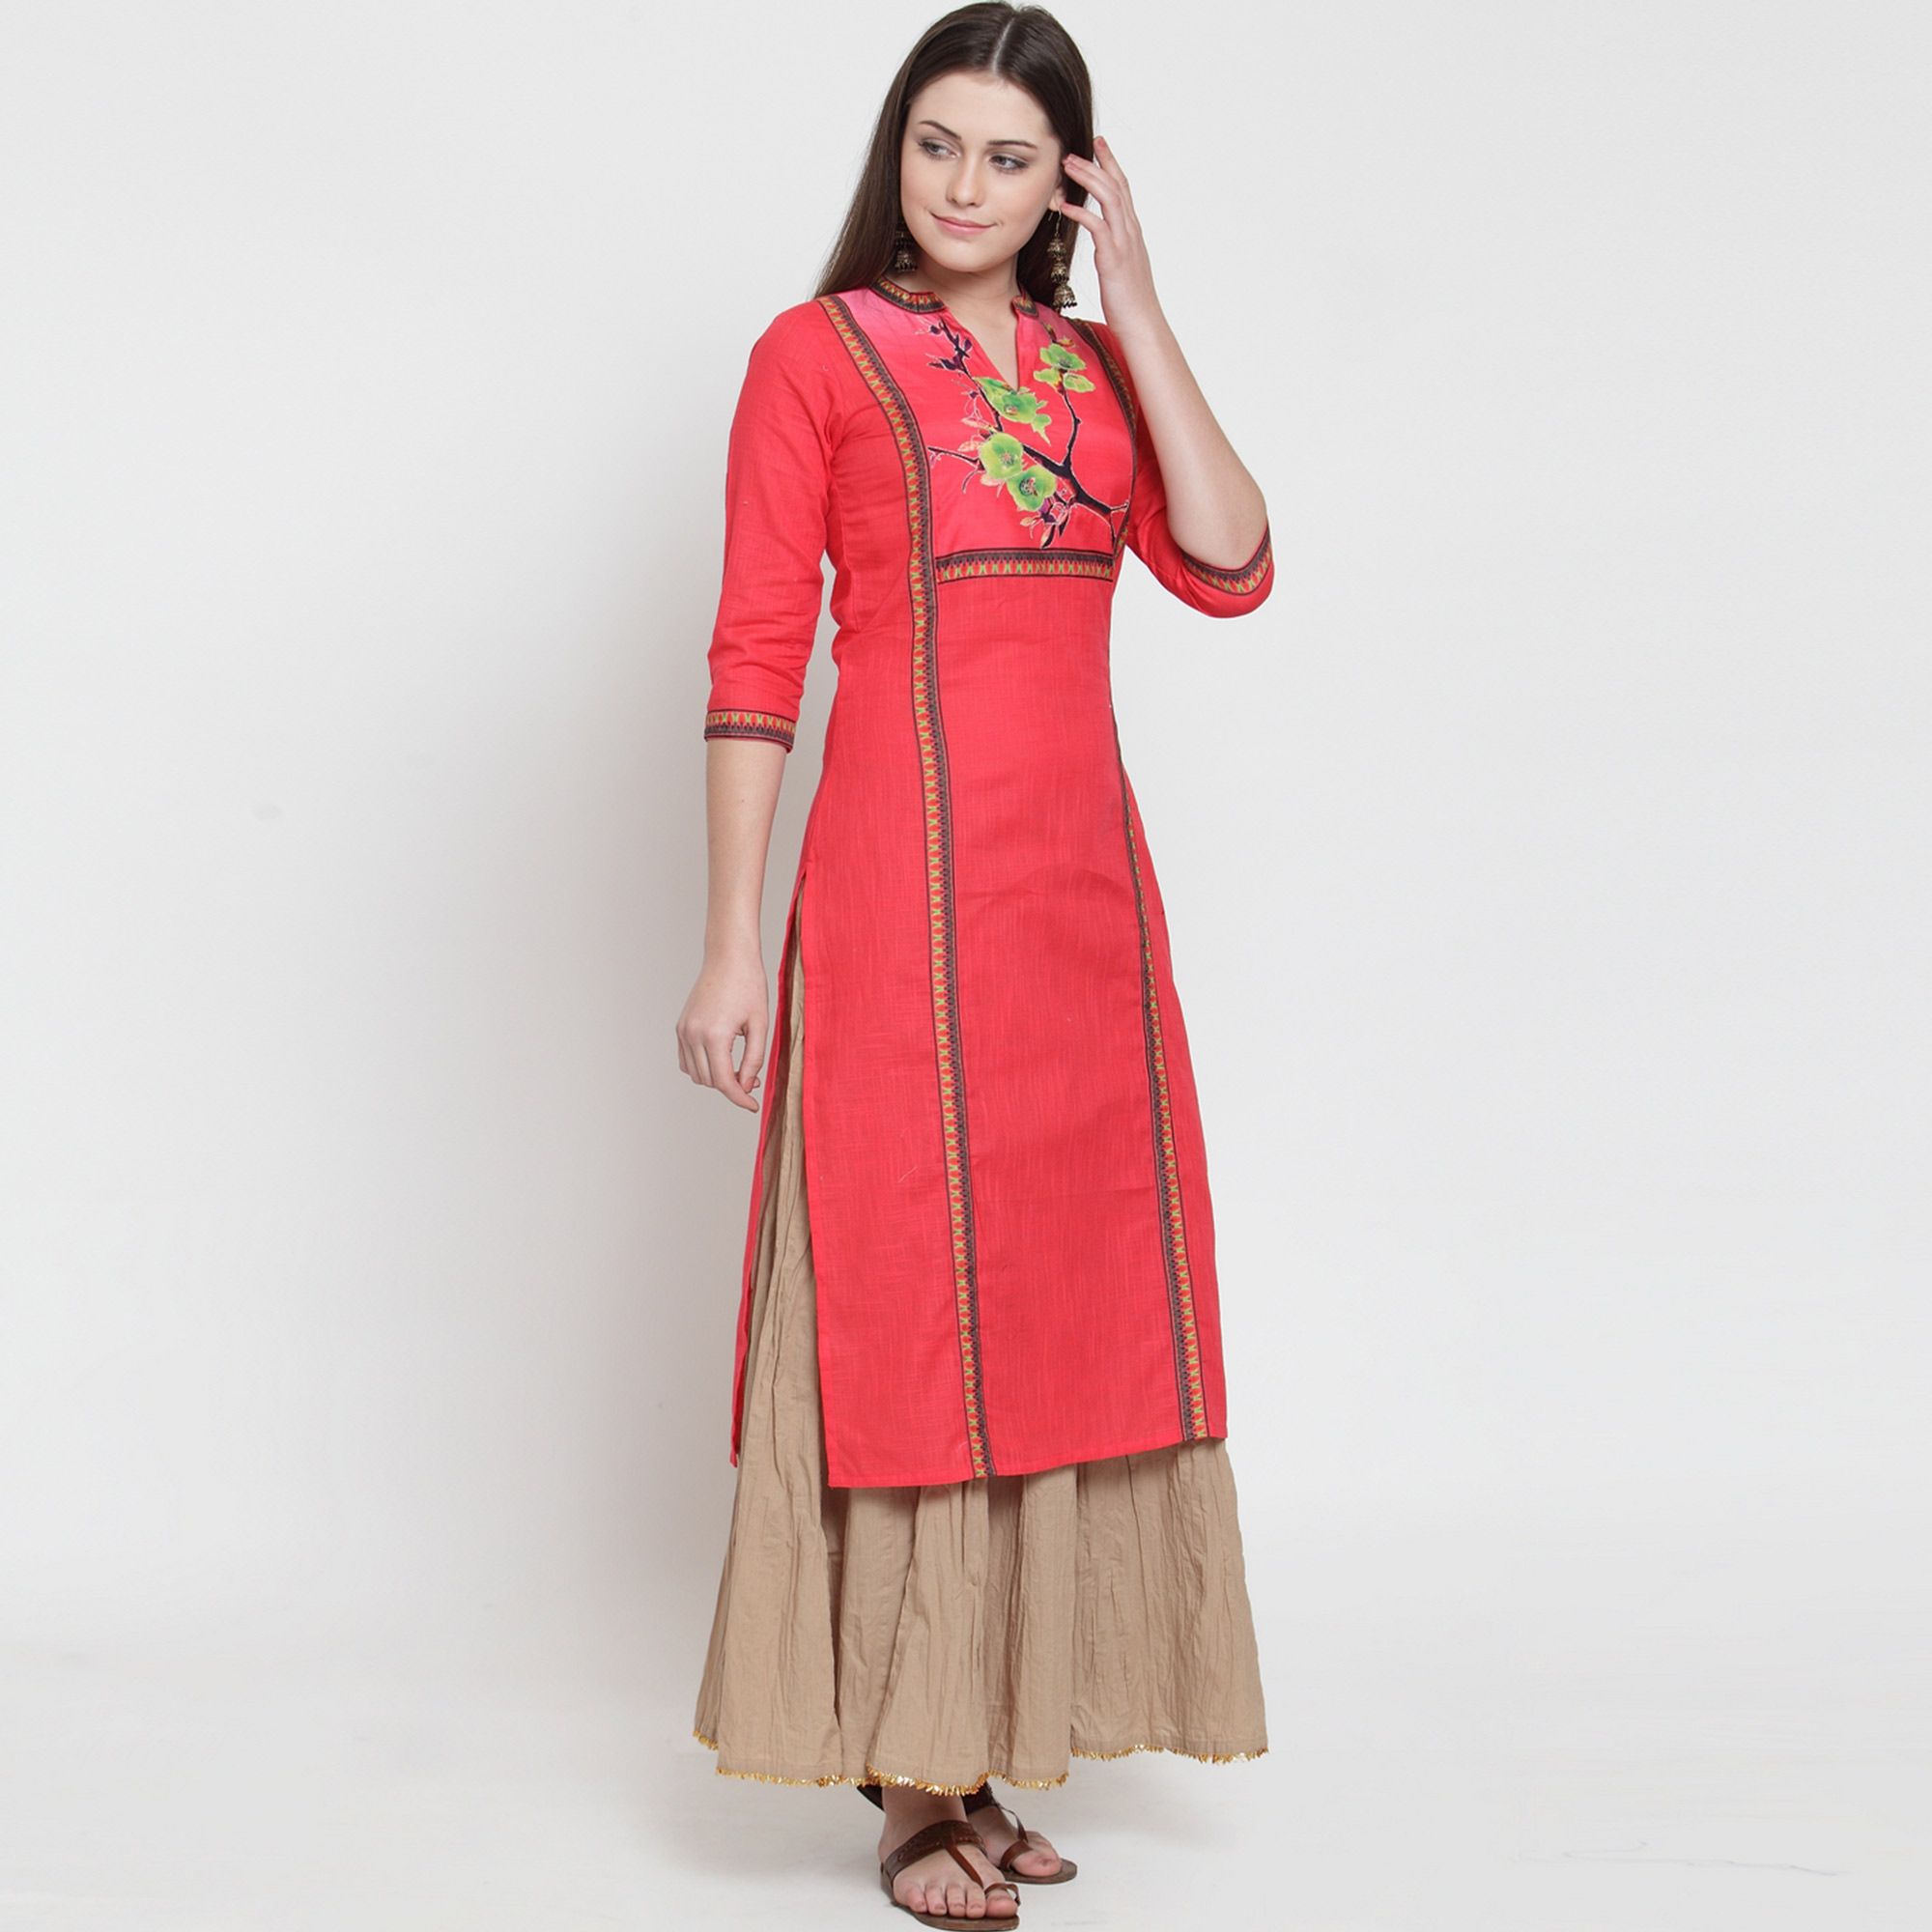 Flattering Gajri Colored Casual Wear Printed Rayon Kurti